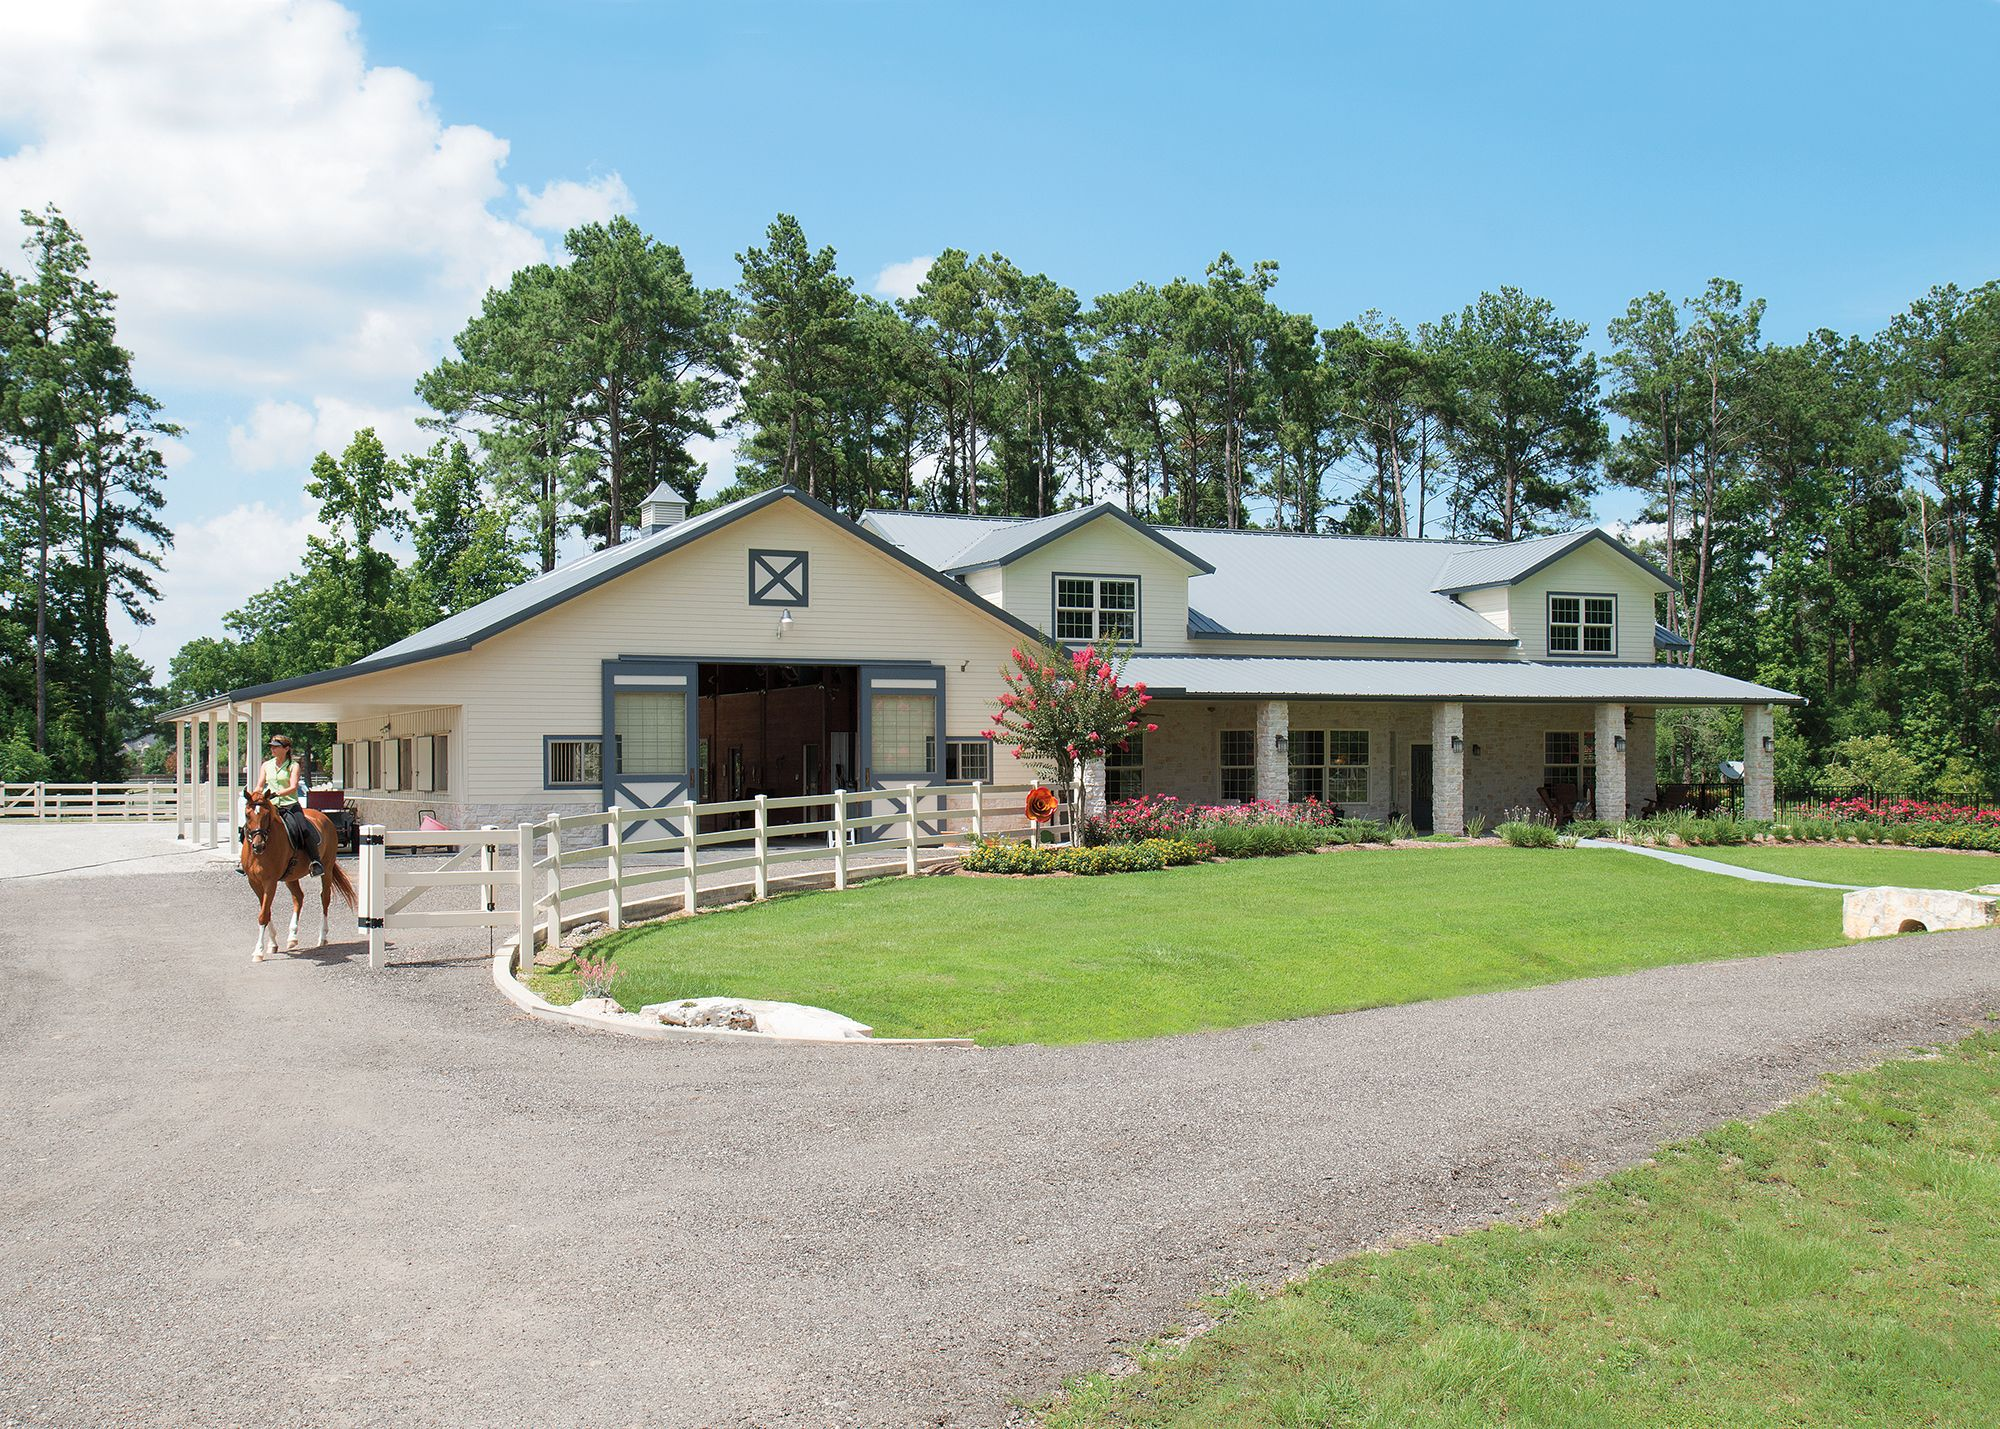 morton buildings horse barn with attached residence in